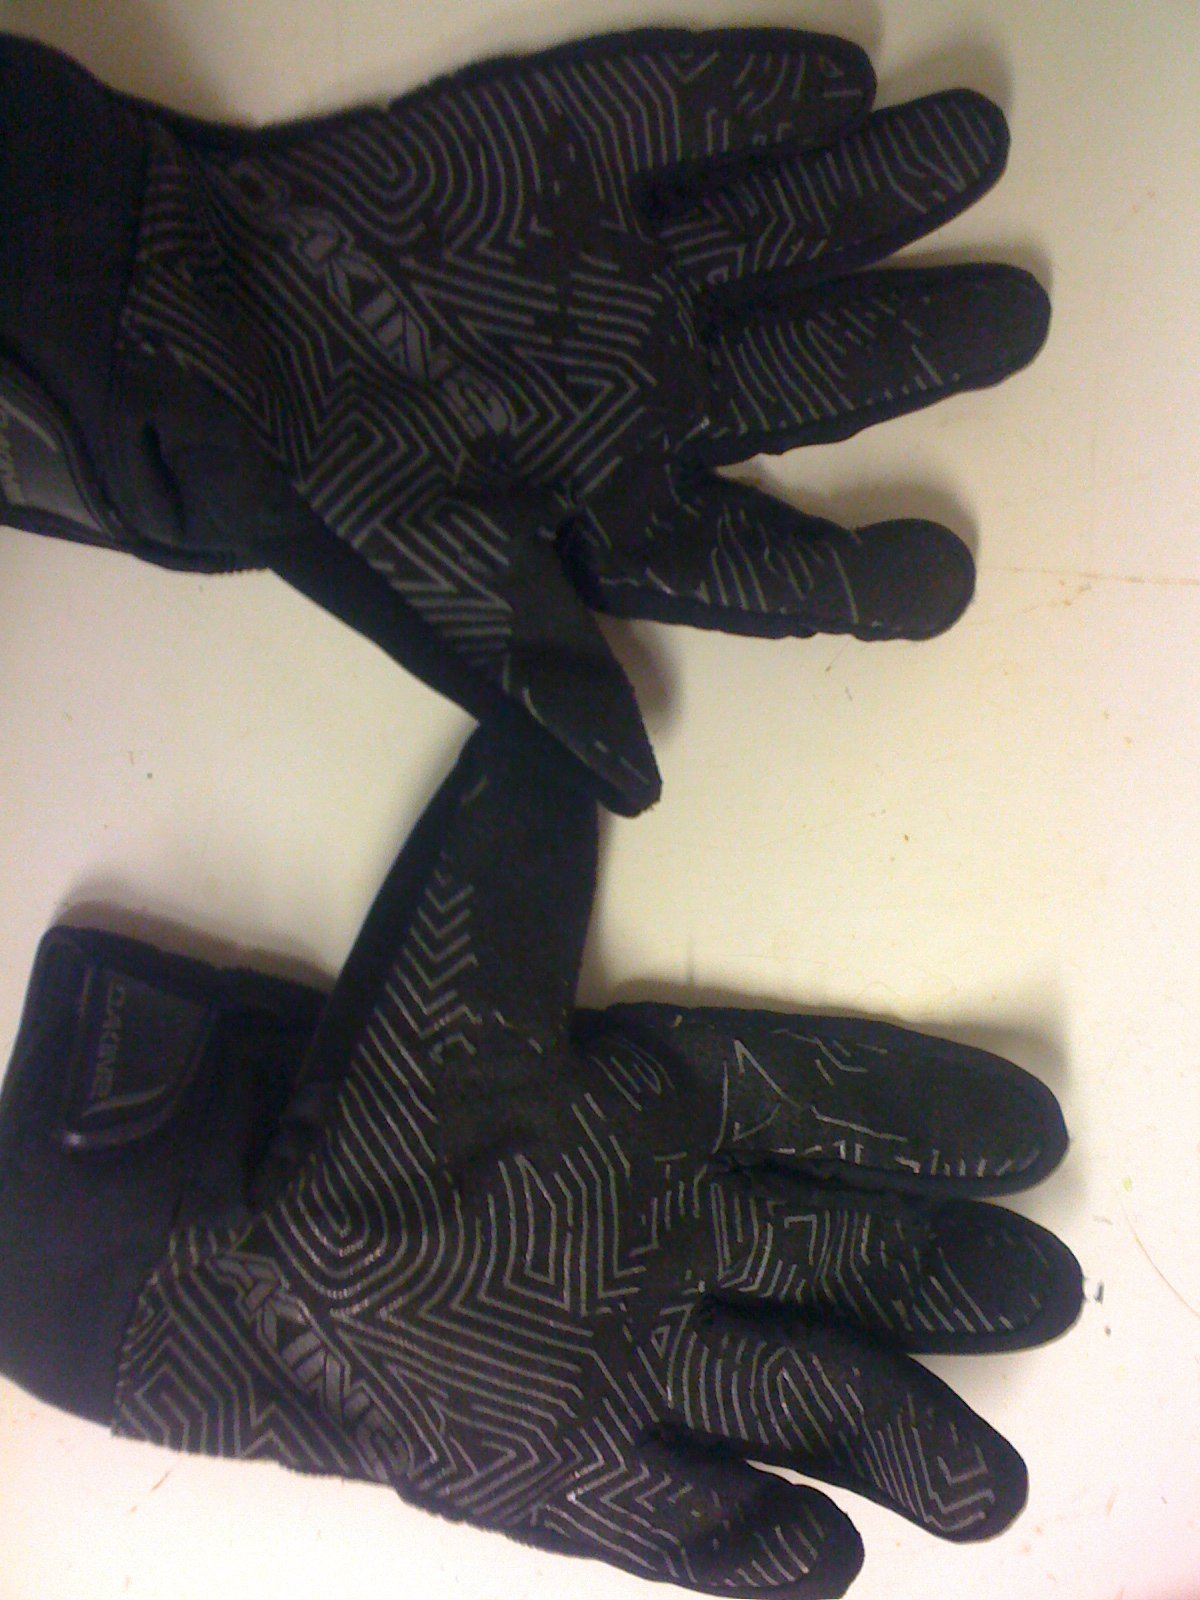 inside dakine gloves